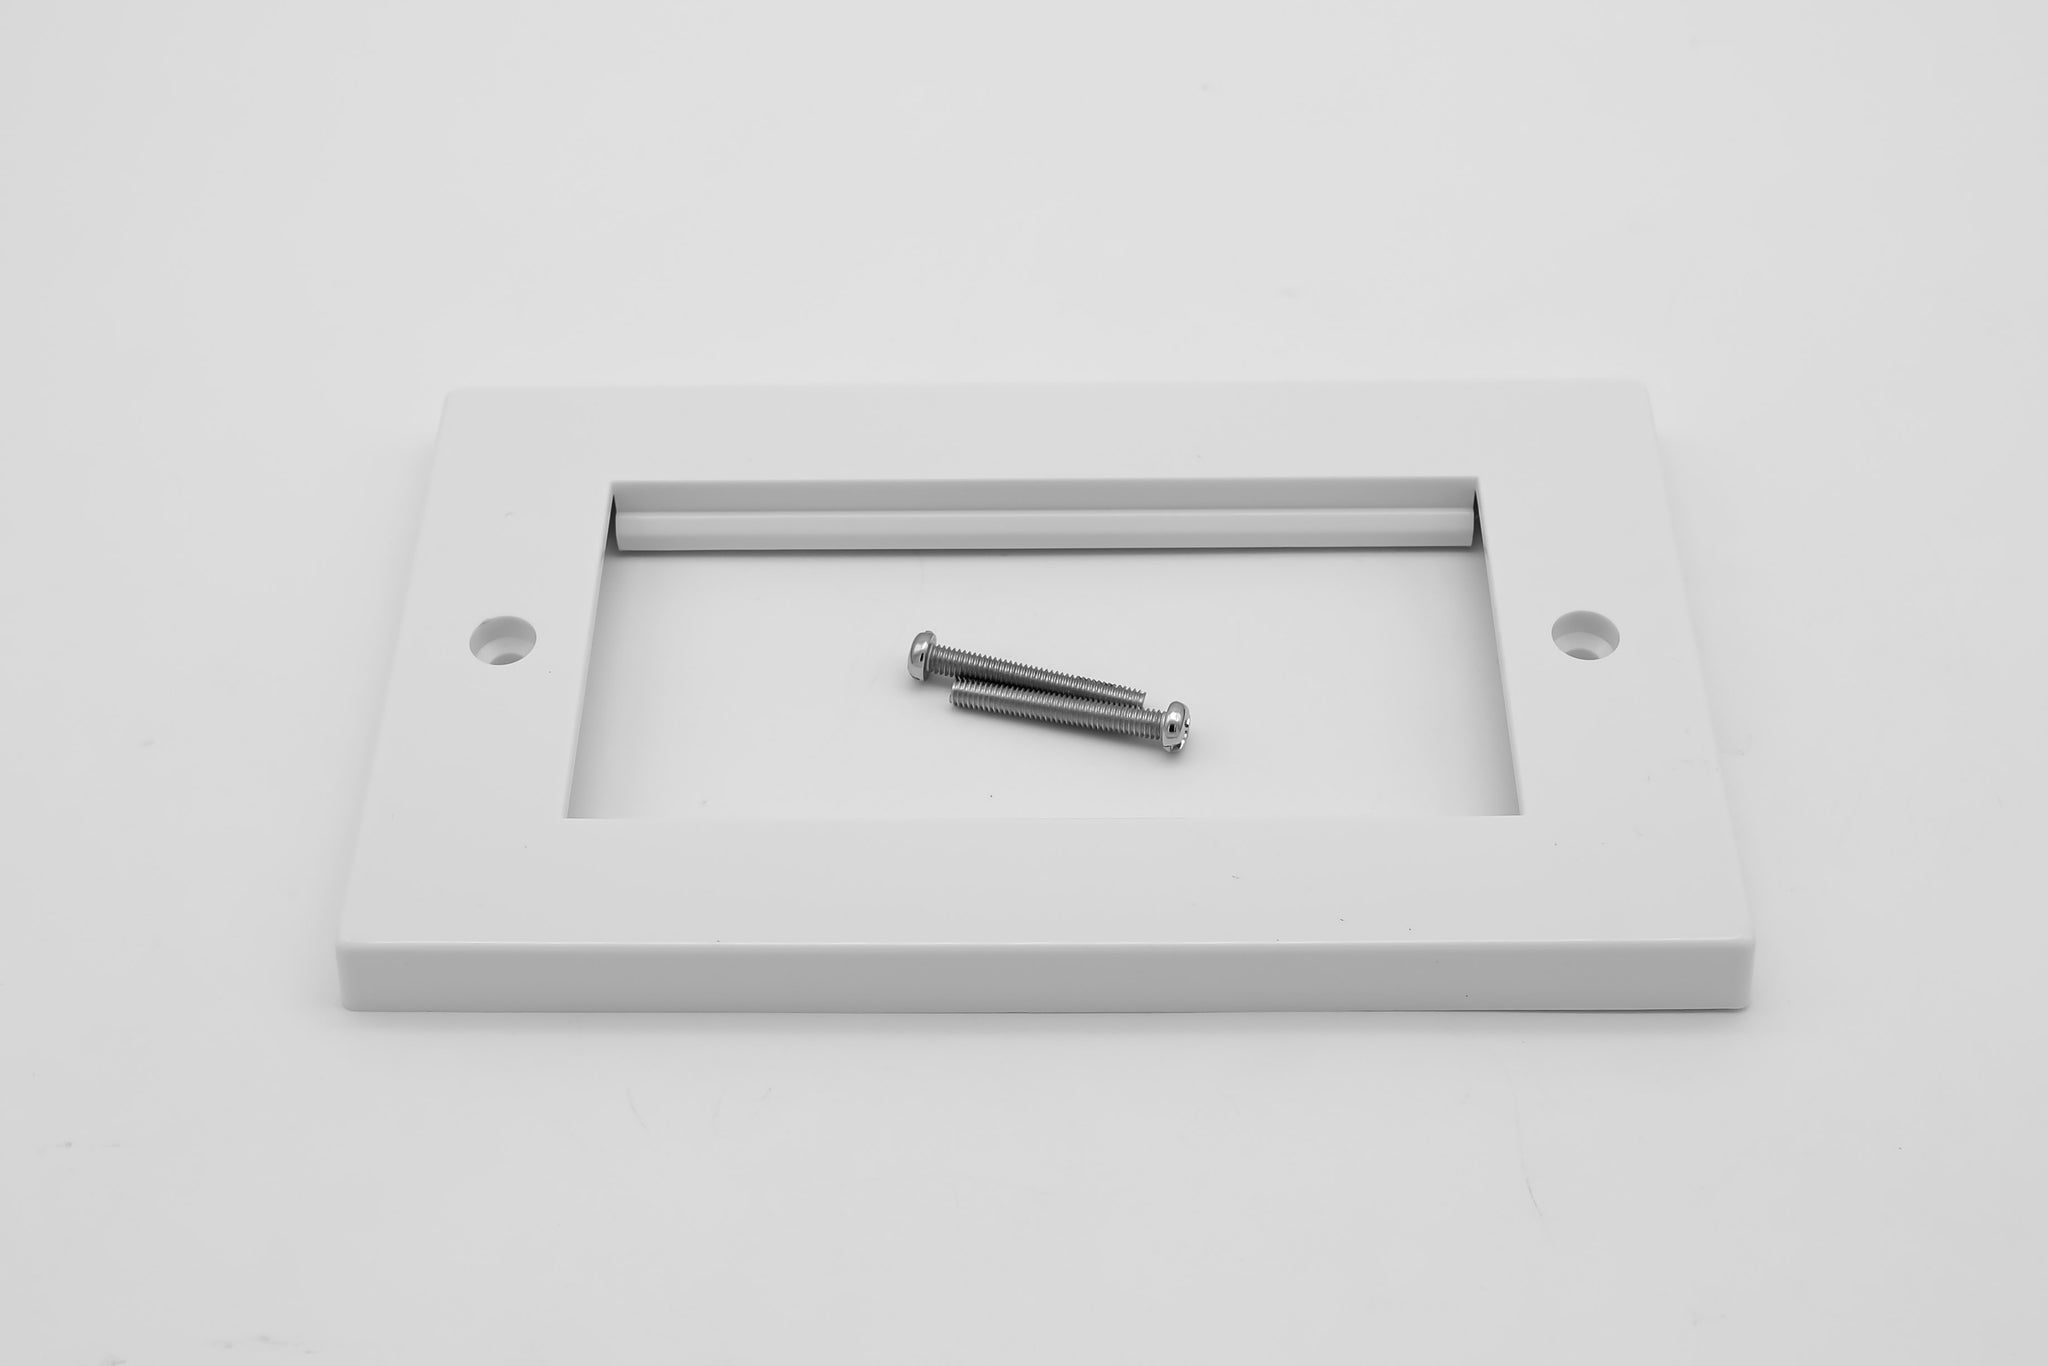 Low Profile Double Gang (4 Slot) Faceplate for 4 x Euro Modules -  White